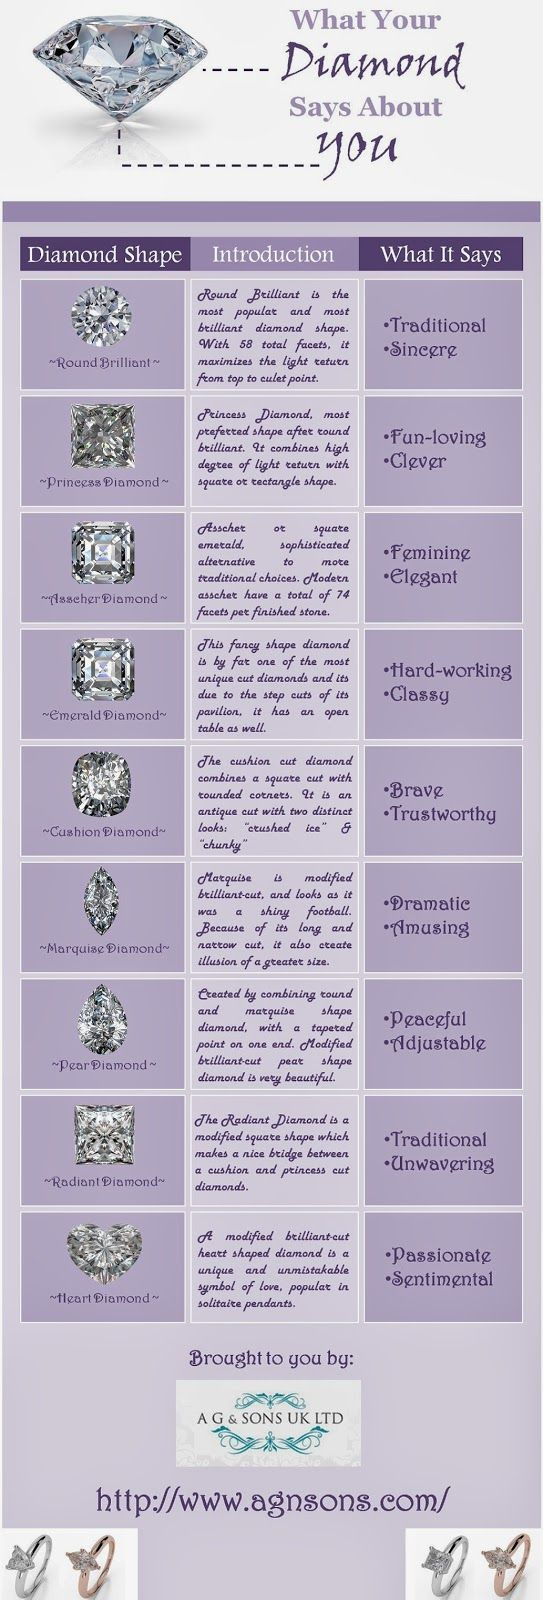 The Meaning Behind Your #Diamond Ring